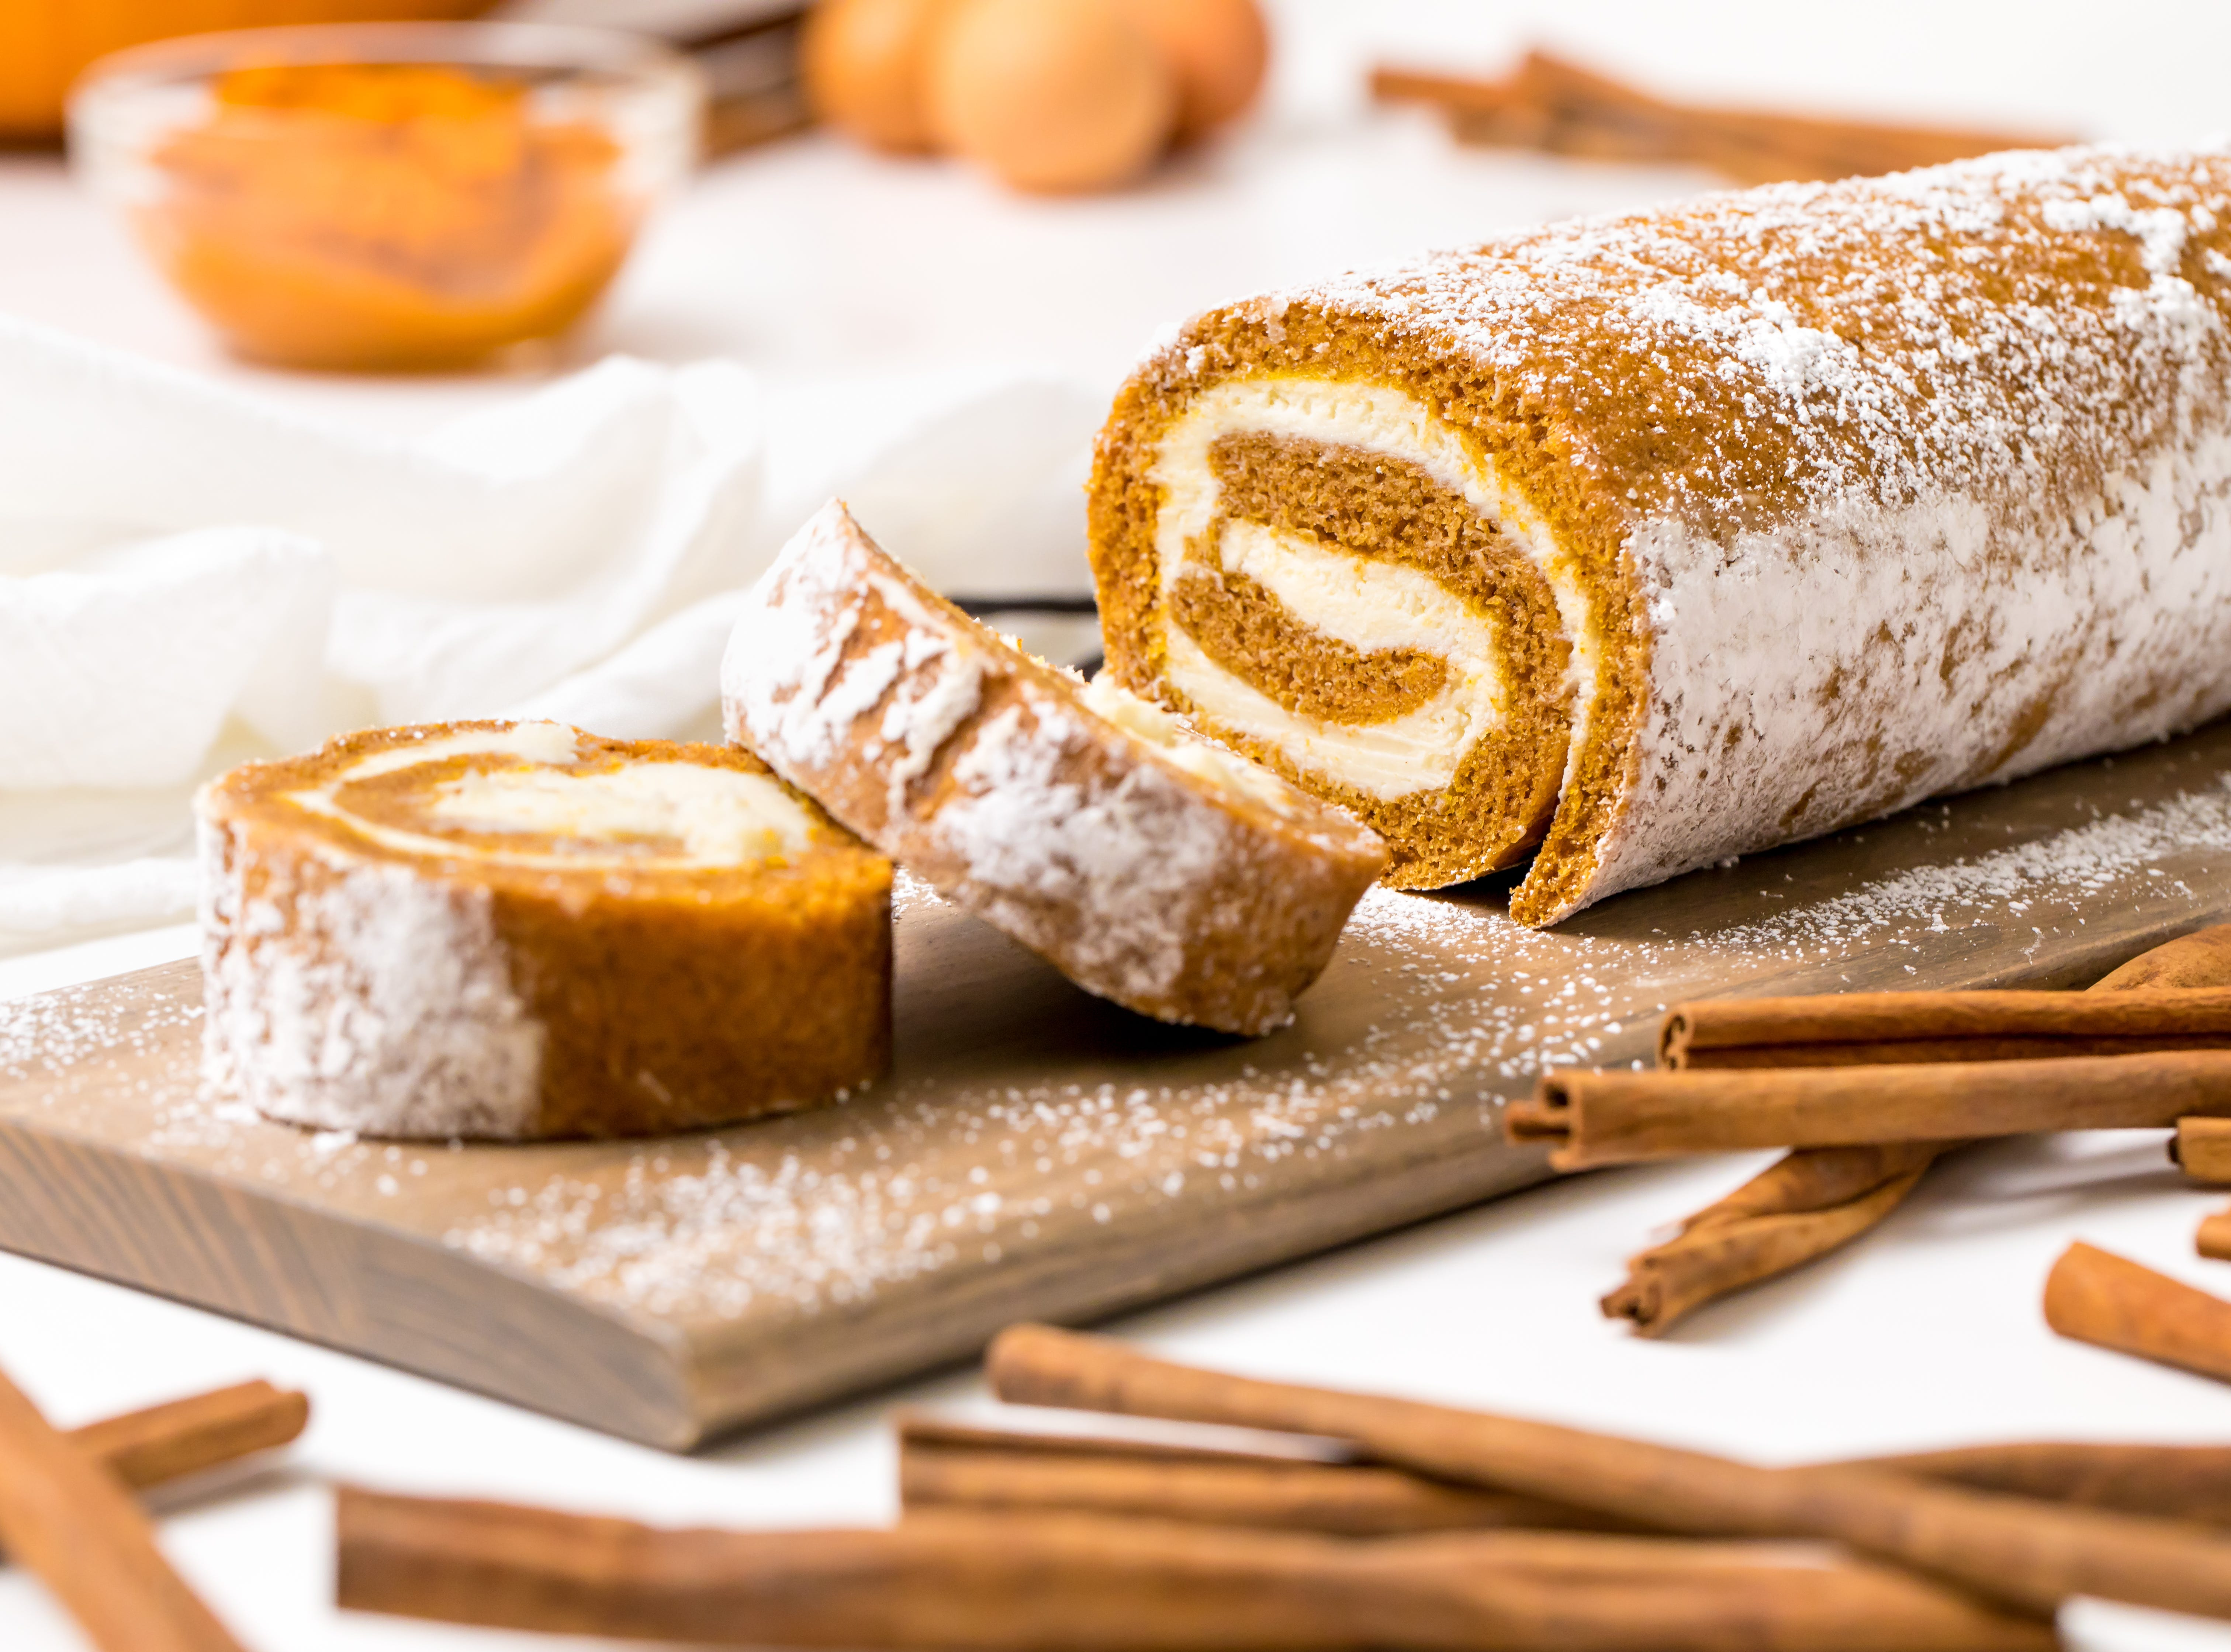 When your sweet tooth is yearning for a scrumptious fall-inspired dessert for the holidays, bake this pumpkin roll, inspired by That Skinny Chick Can Bake, and enjoy bite after bite of warmly spiced pumpkin cake spiraled with a dreamy cream cheese filling.